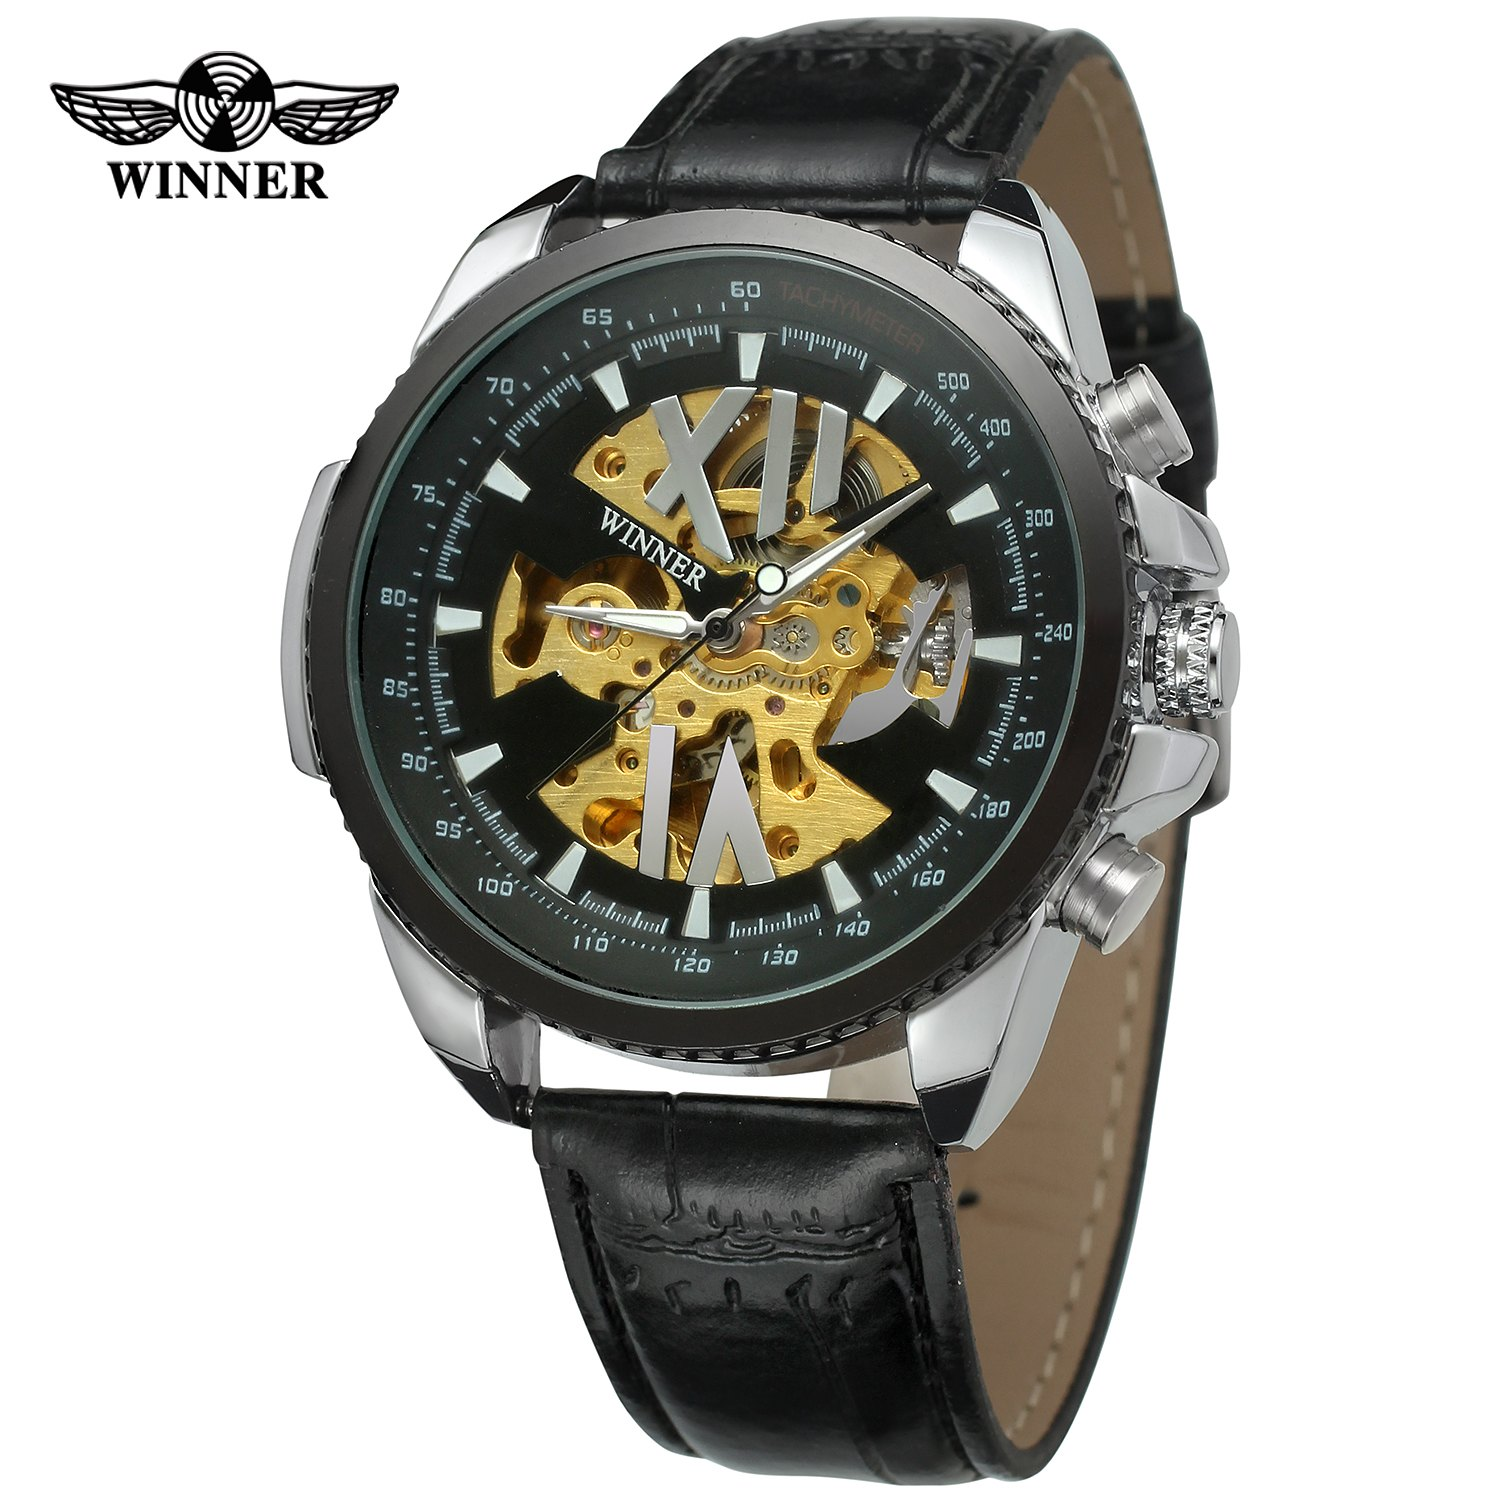 Top Brand Winner New Skeleton Watch Military Style Leather Strap Clock Men Gift Famouse Mechanical Automatic Wrist Watches